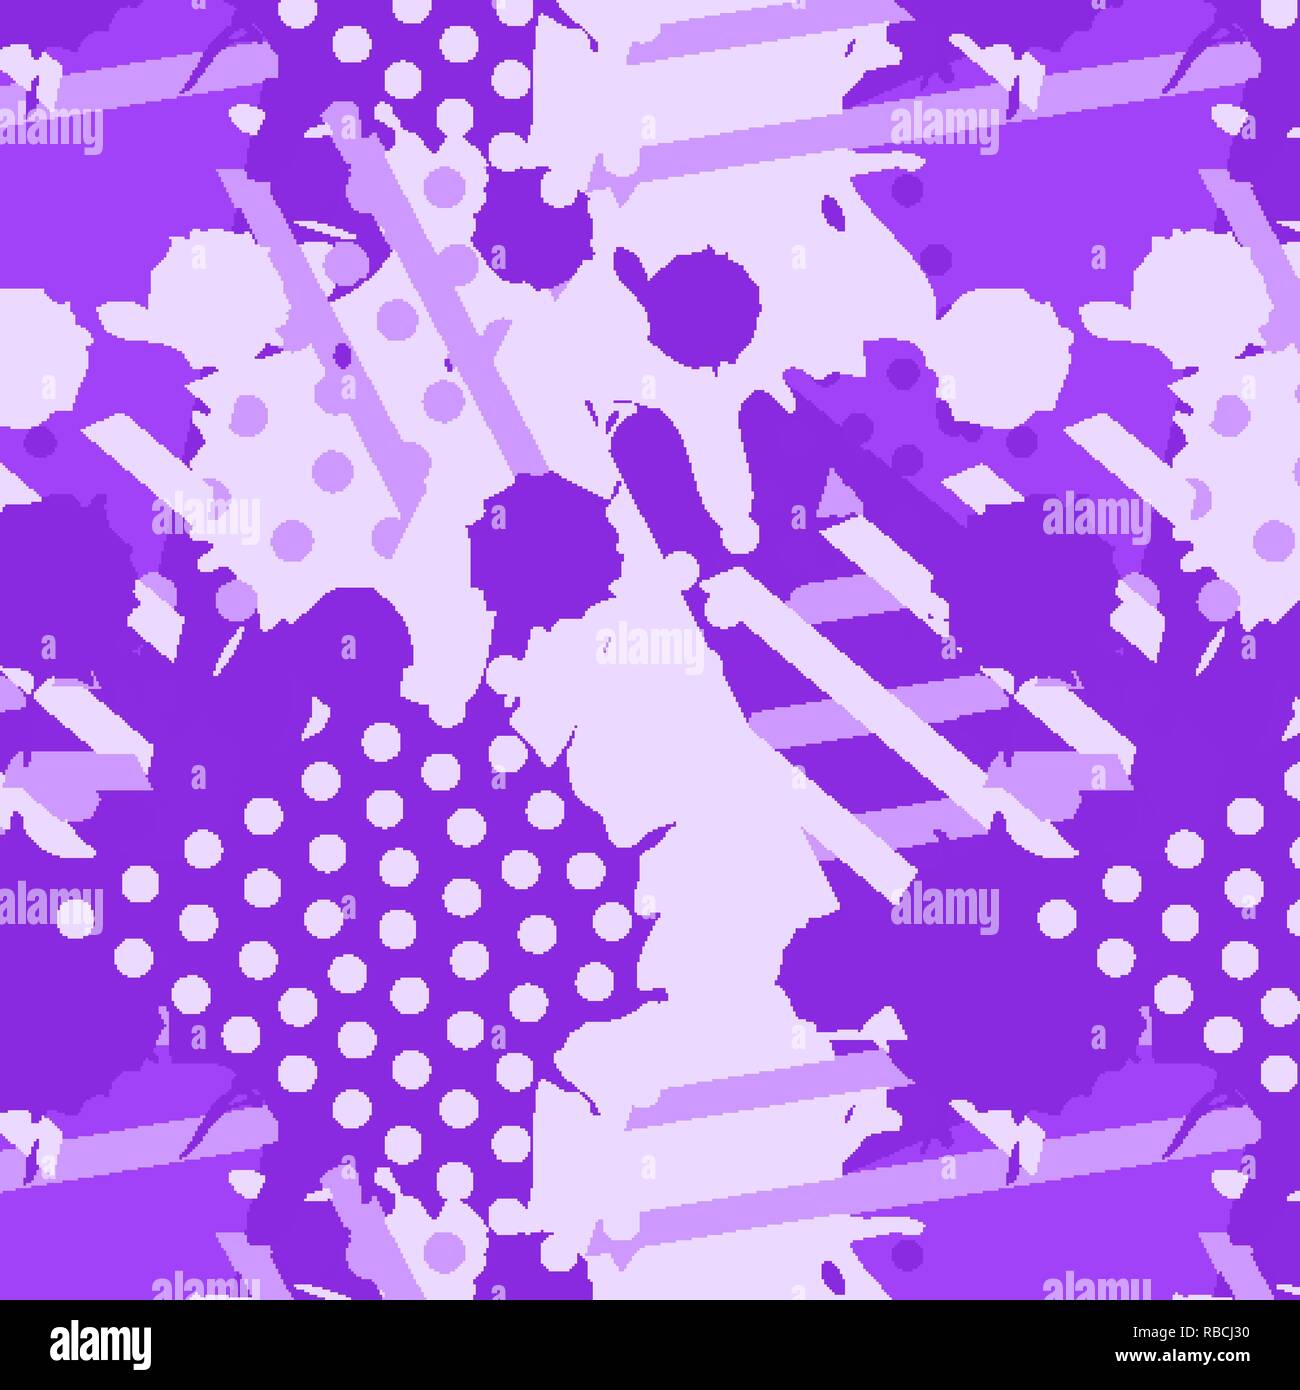 Seamless print texture with liquid and geometric shapes of proton purple color